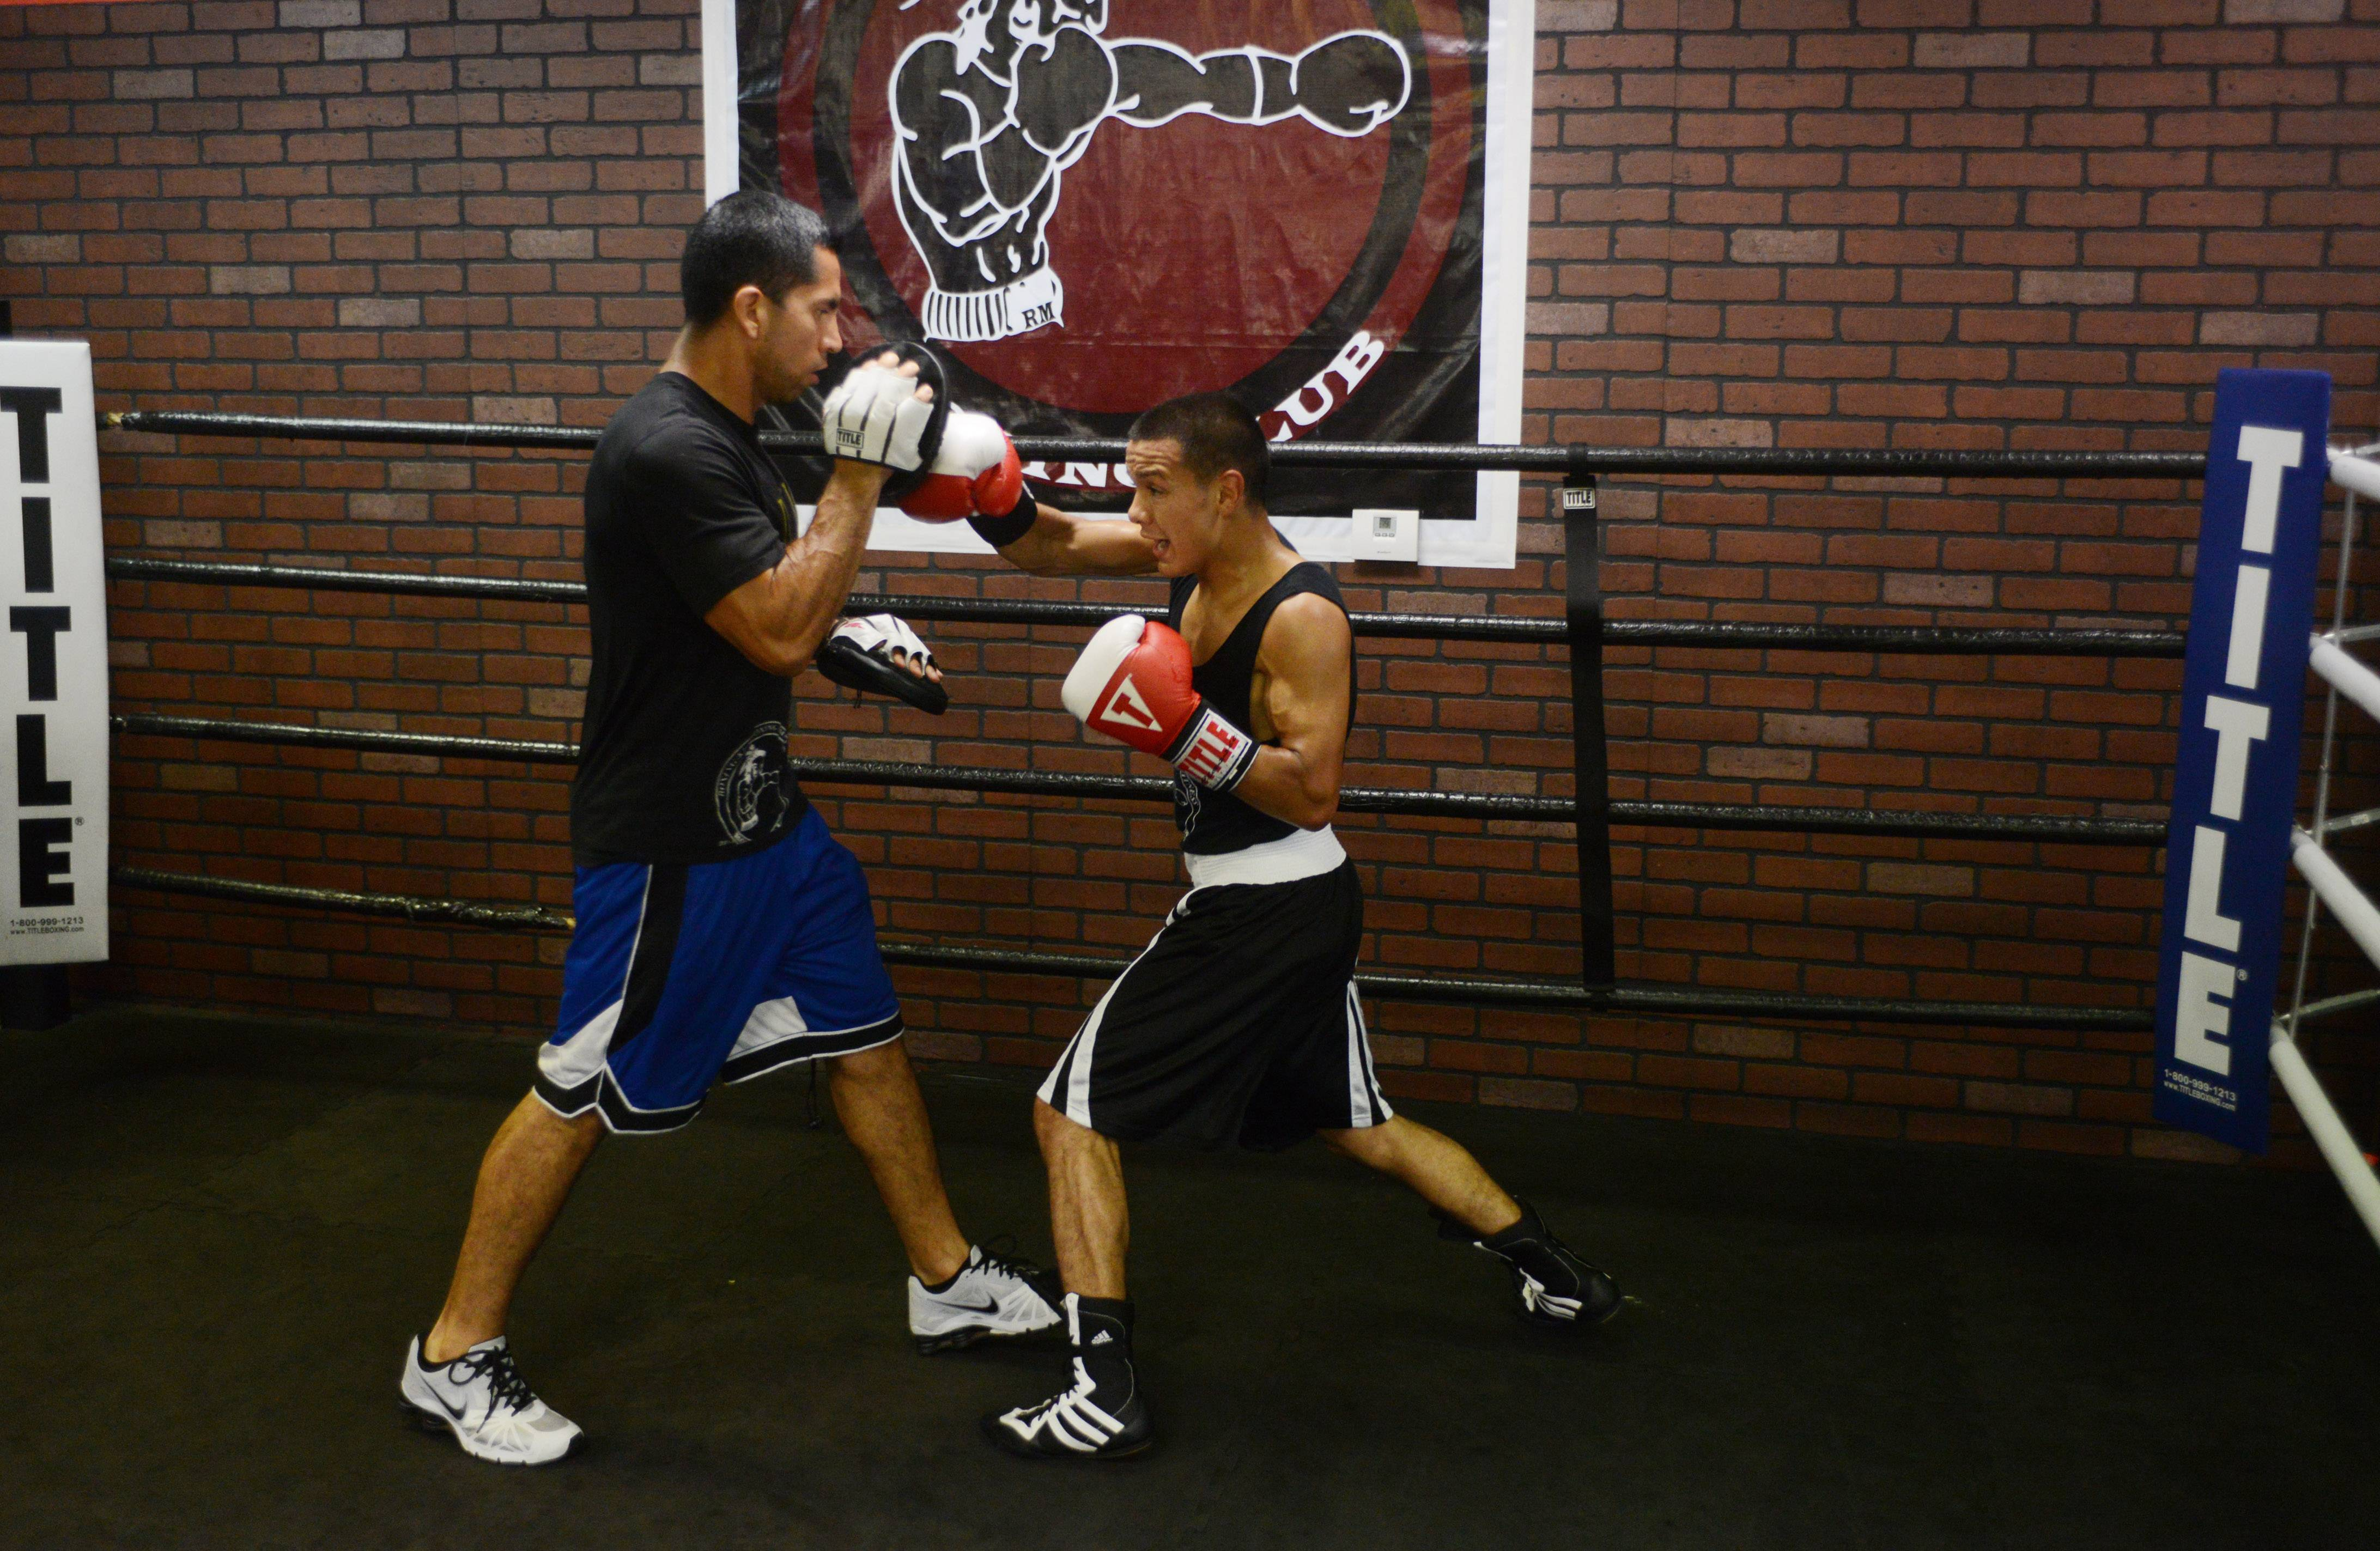 Javier Rivera, 19, works out with his coach, Pedro Calla, at Rumi Maki Boxing and Fitness Club in Palatine. Javier, a Palatine resident, credits his parents with teaching him to follow the right path while growing up.